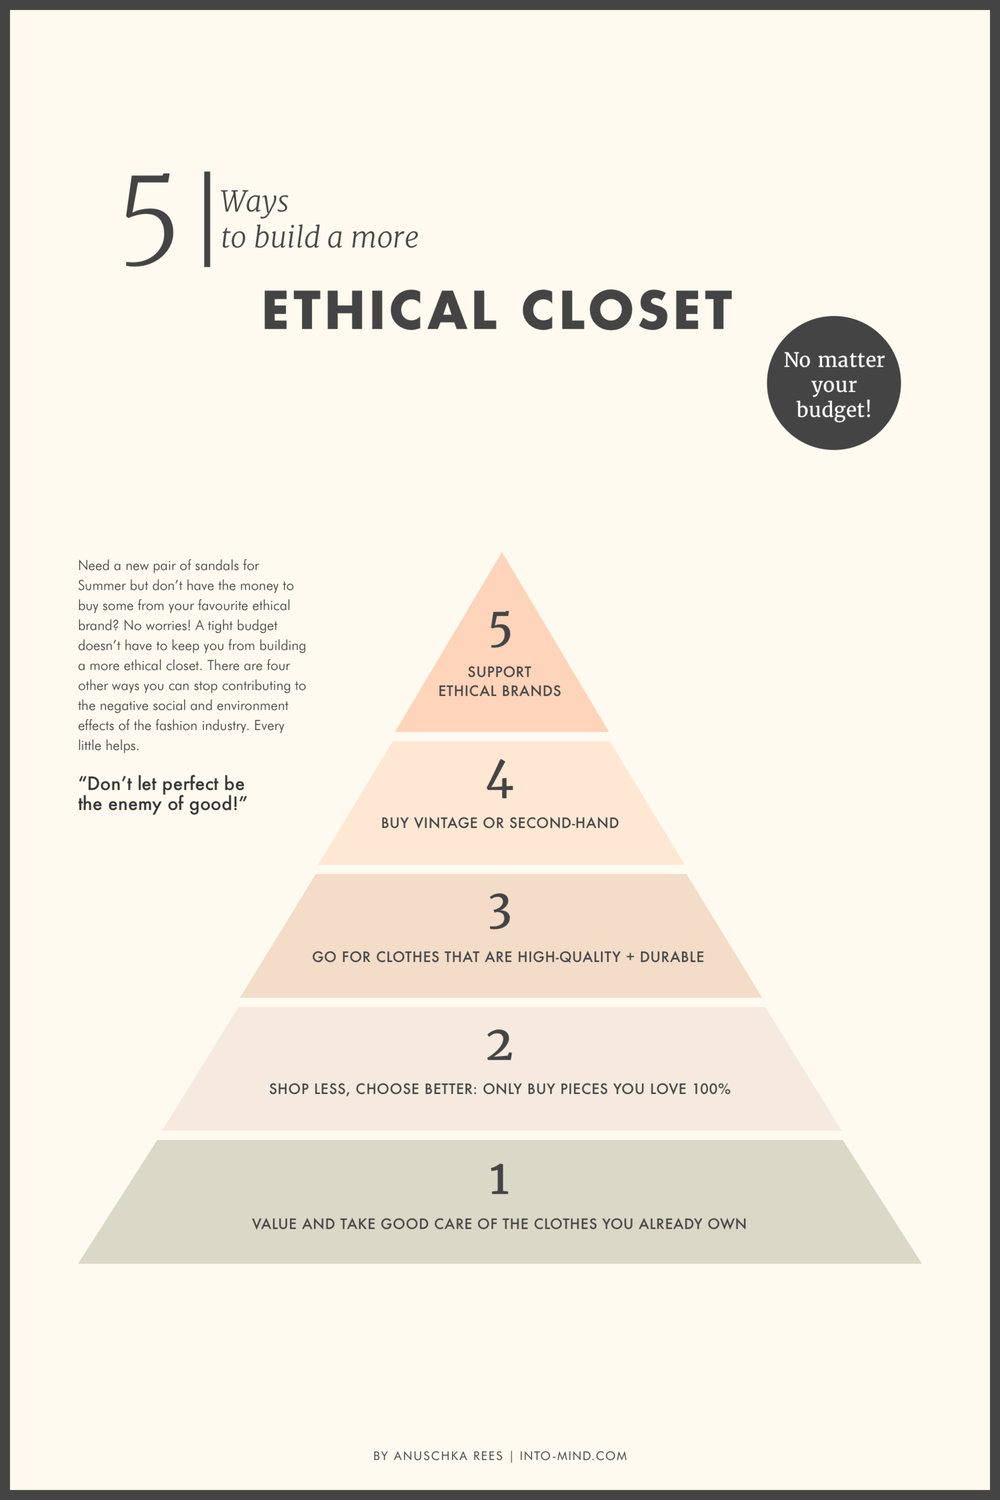 Anushka Rees' Ethical Closet pyramid taken from her website  Into-Mind